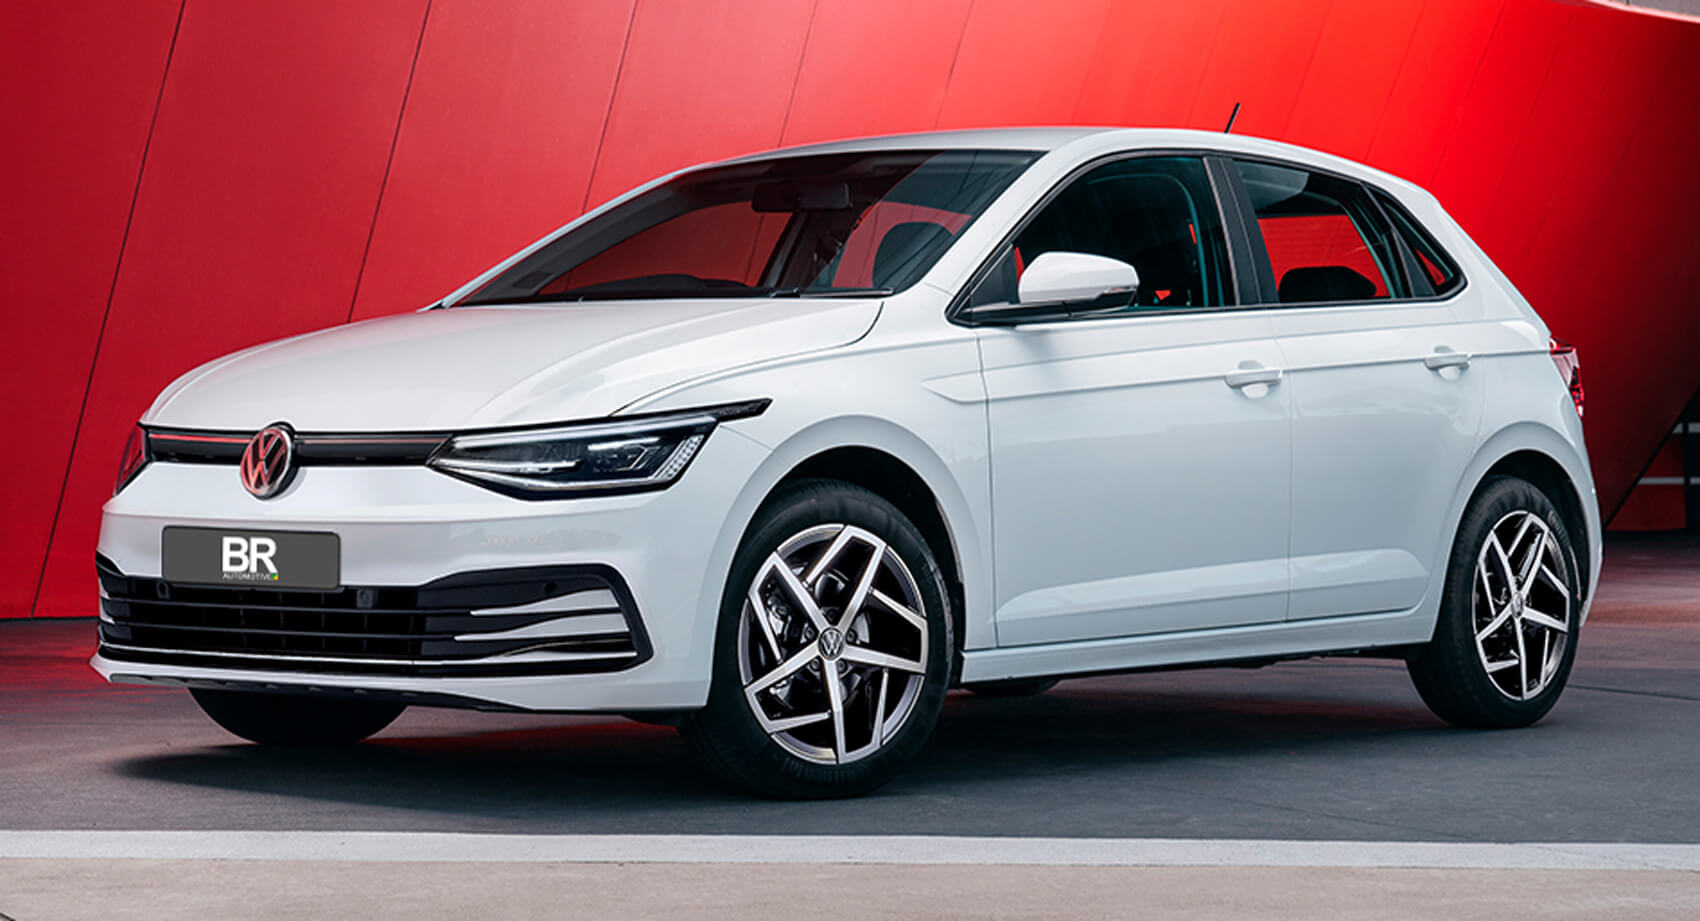 Does The VW Polo Look Better With A Golf Mk3-Inspired Face